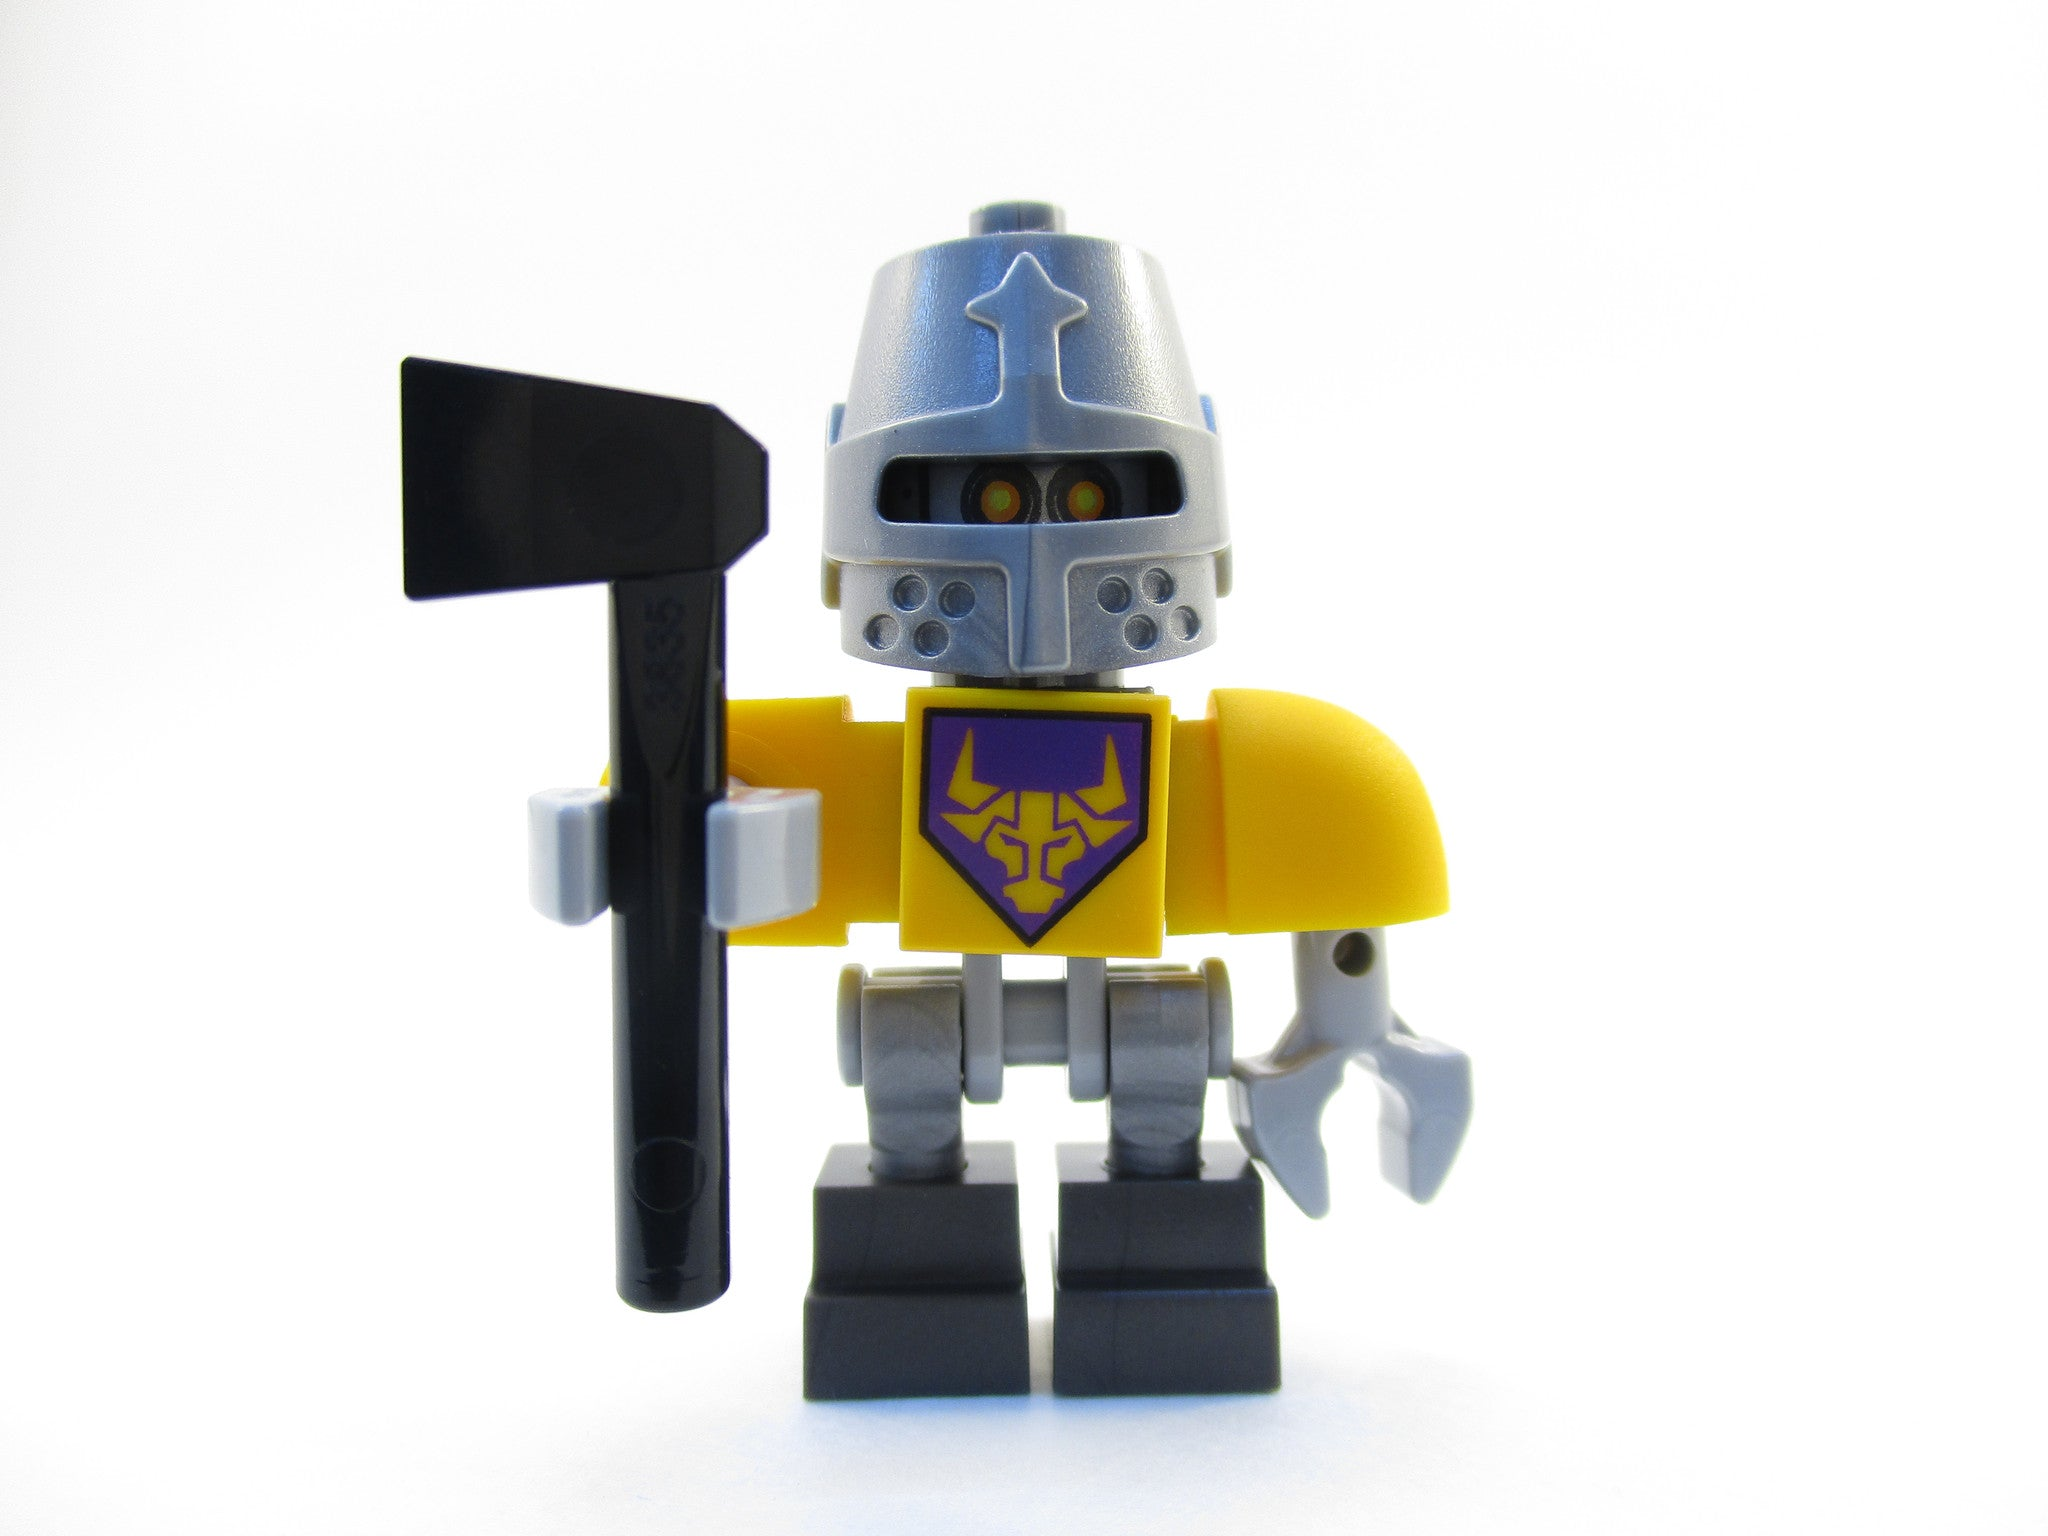 LEGO Nexo Knights Axl Bot Minifigure 70322 Mini Fig with Axe